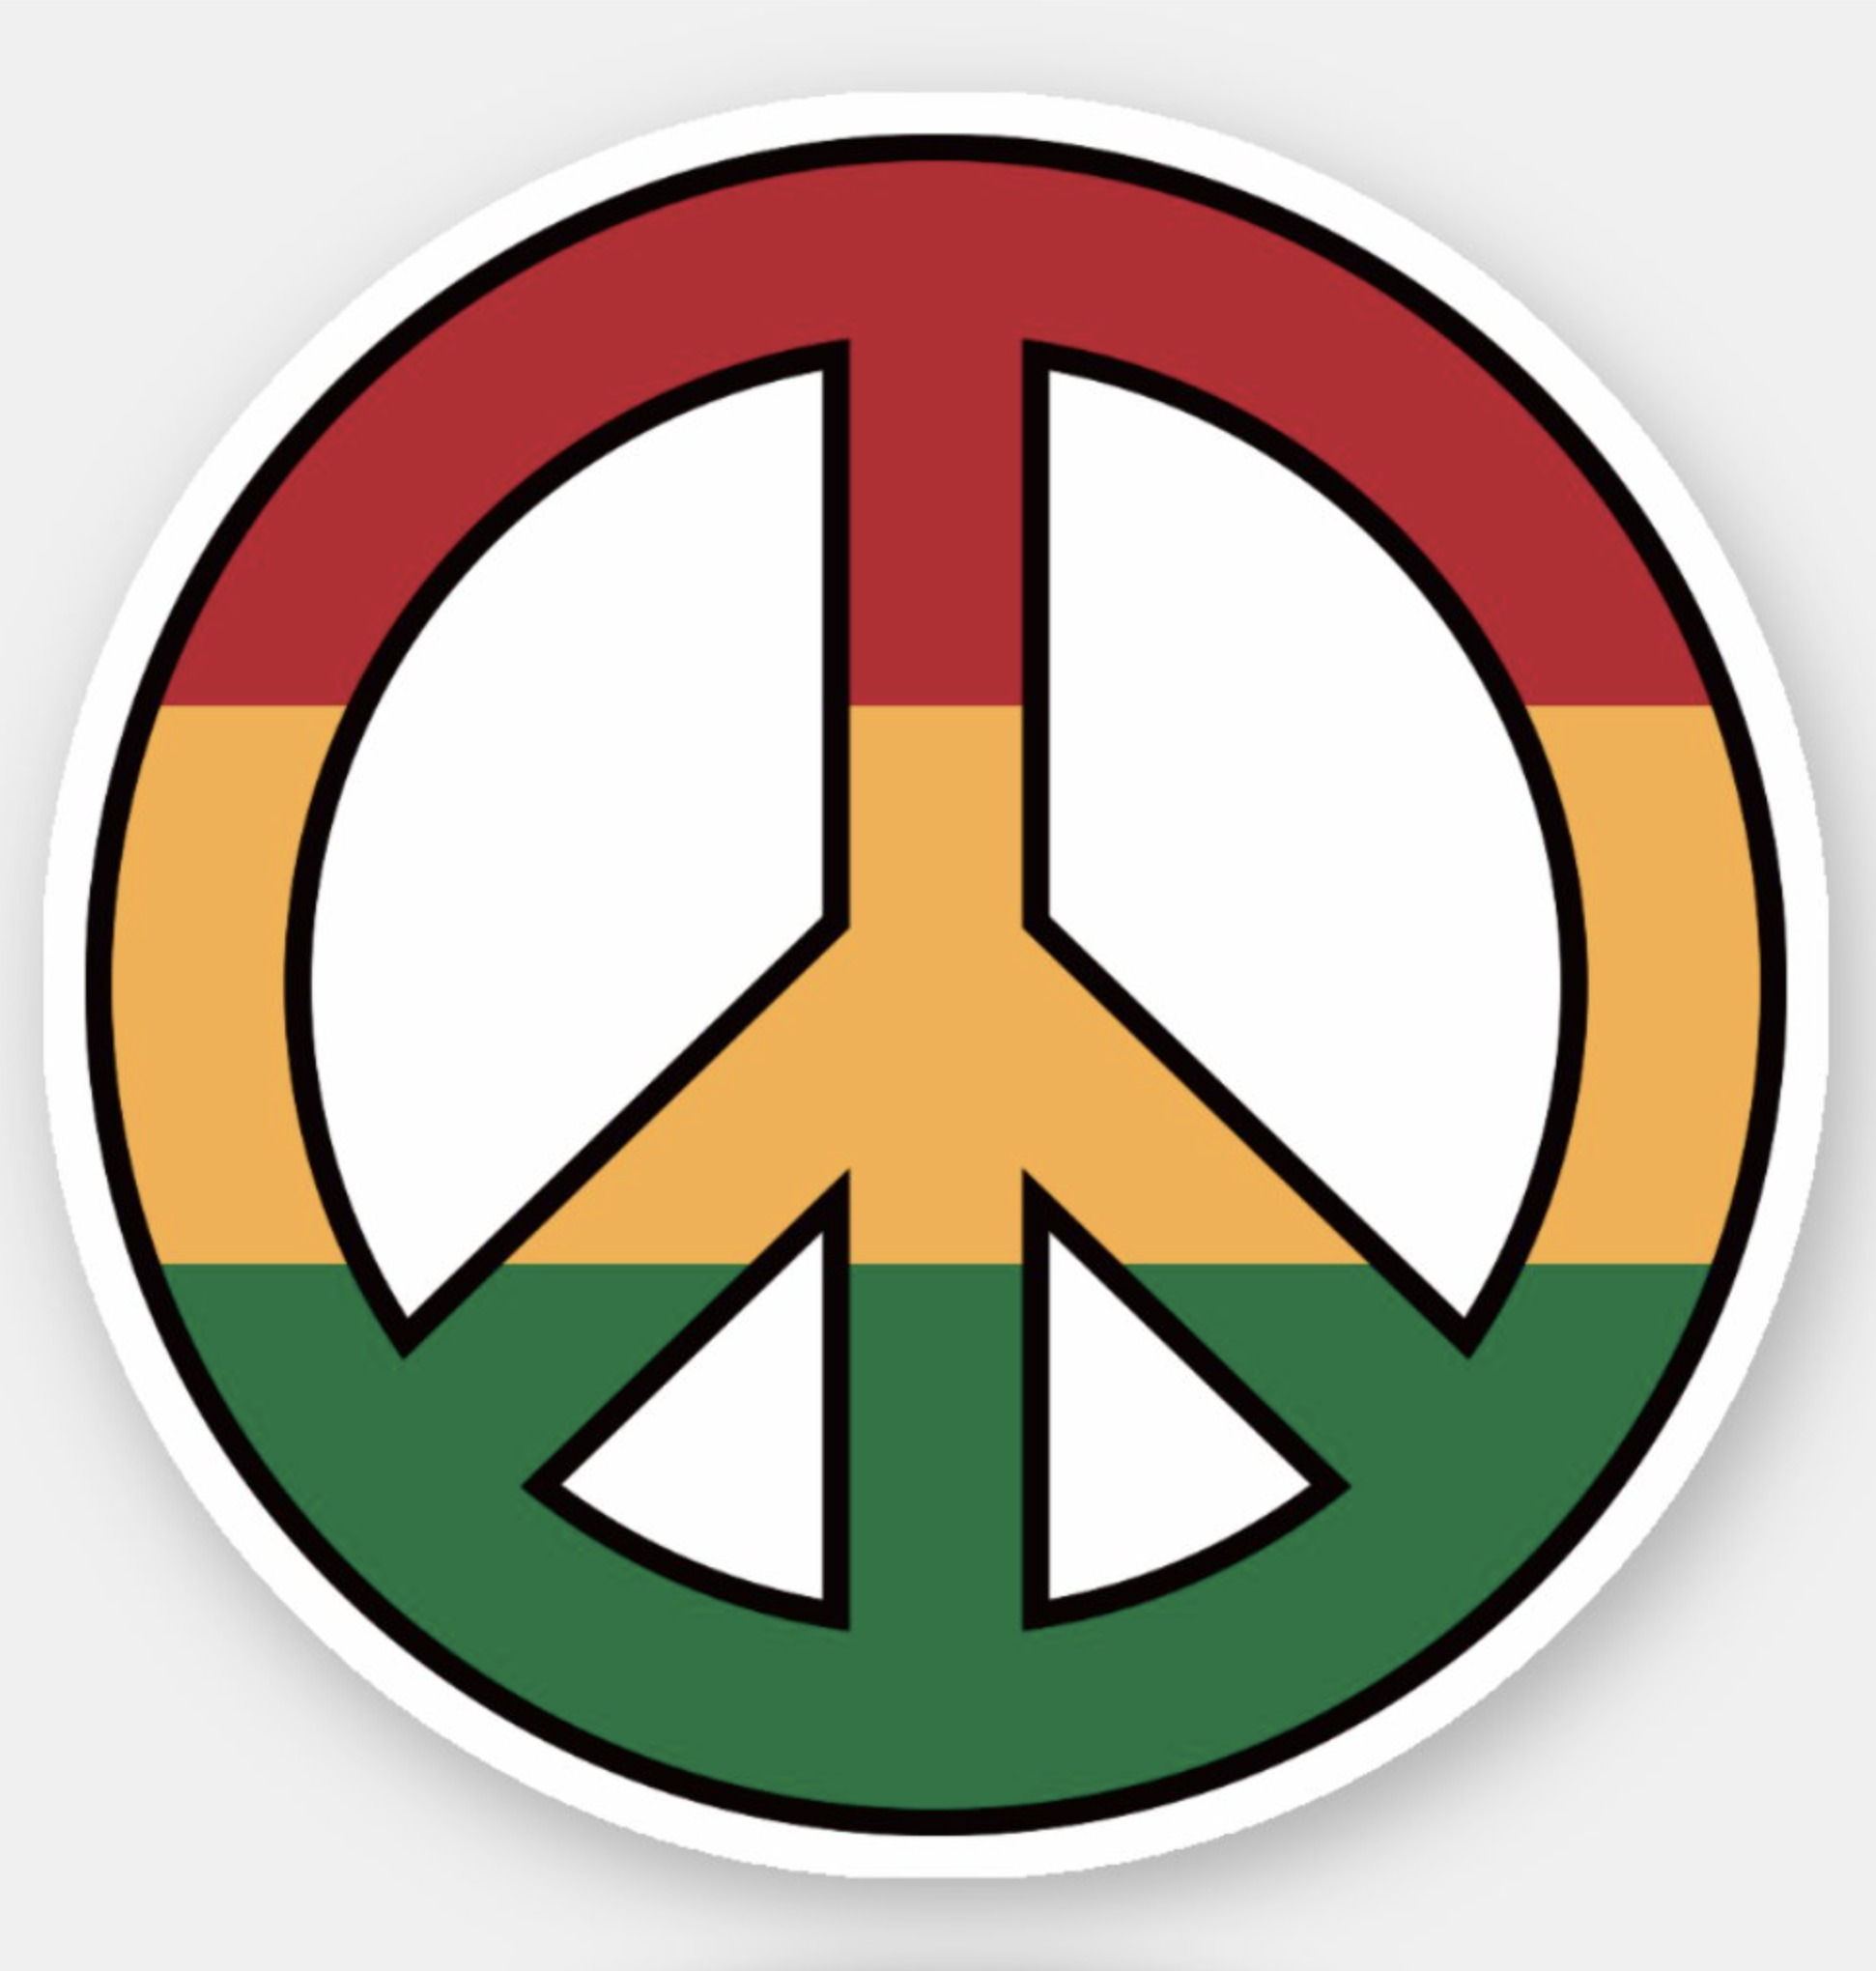 Peace Sign Red Swirl Sticker for Laptops Water Bottles and Windows